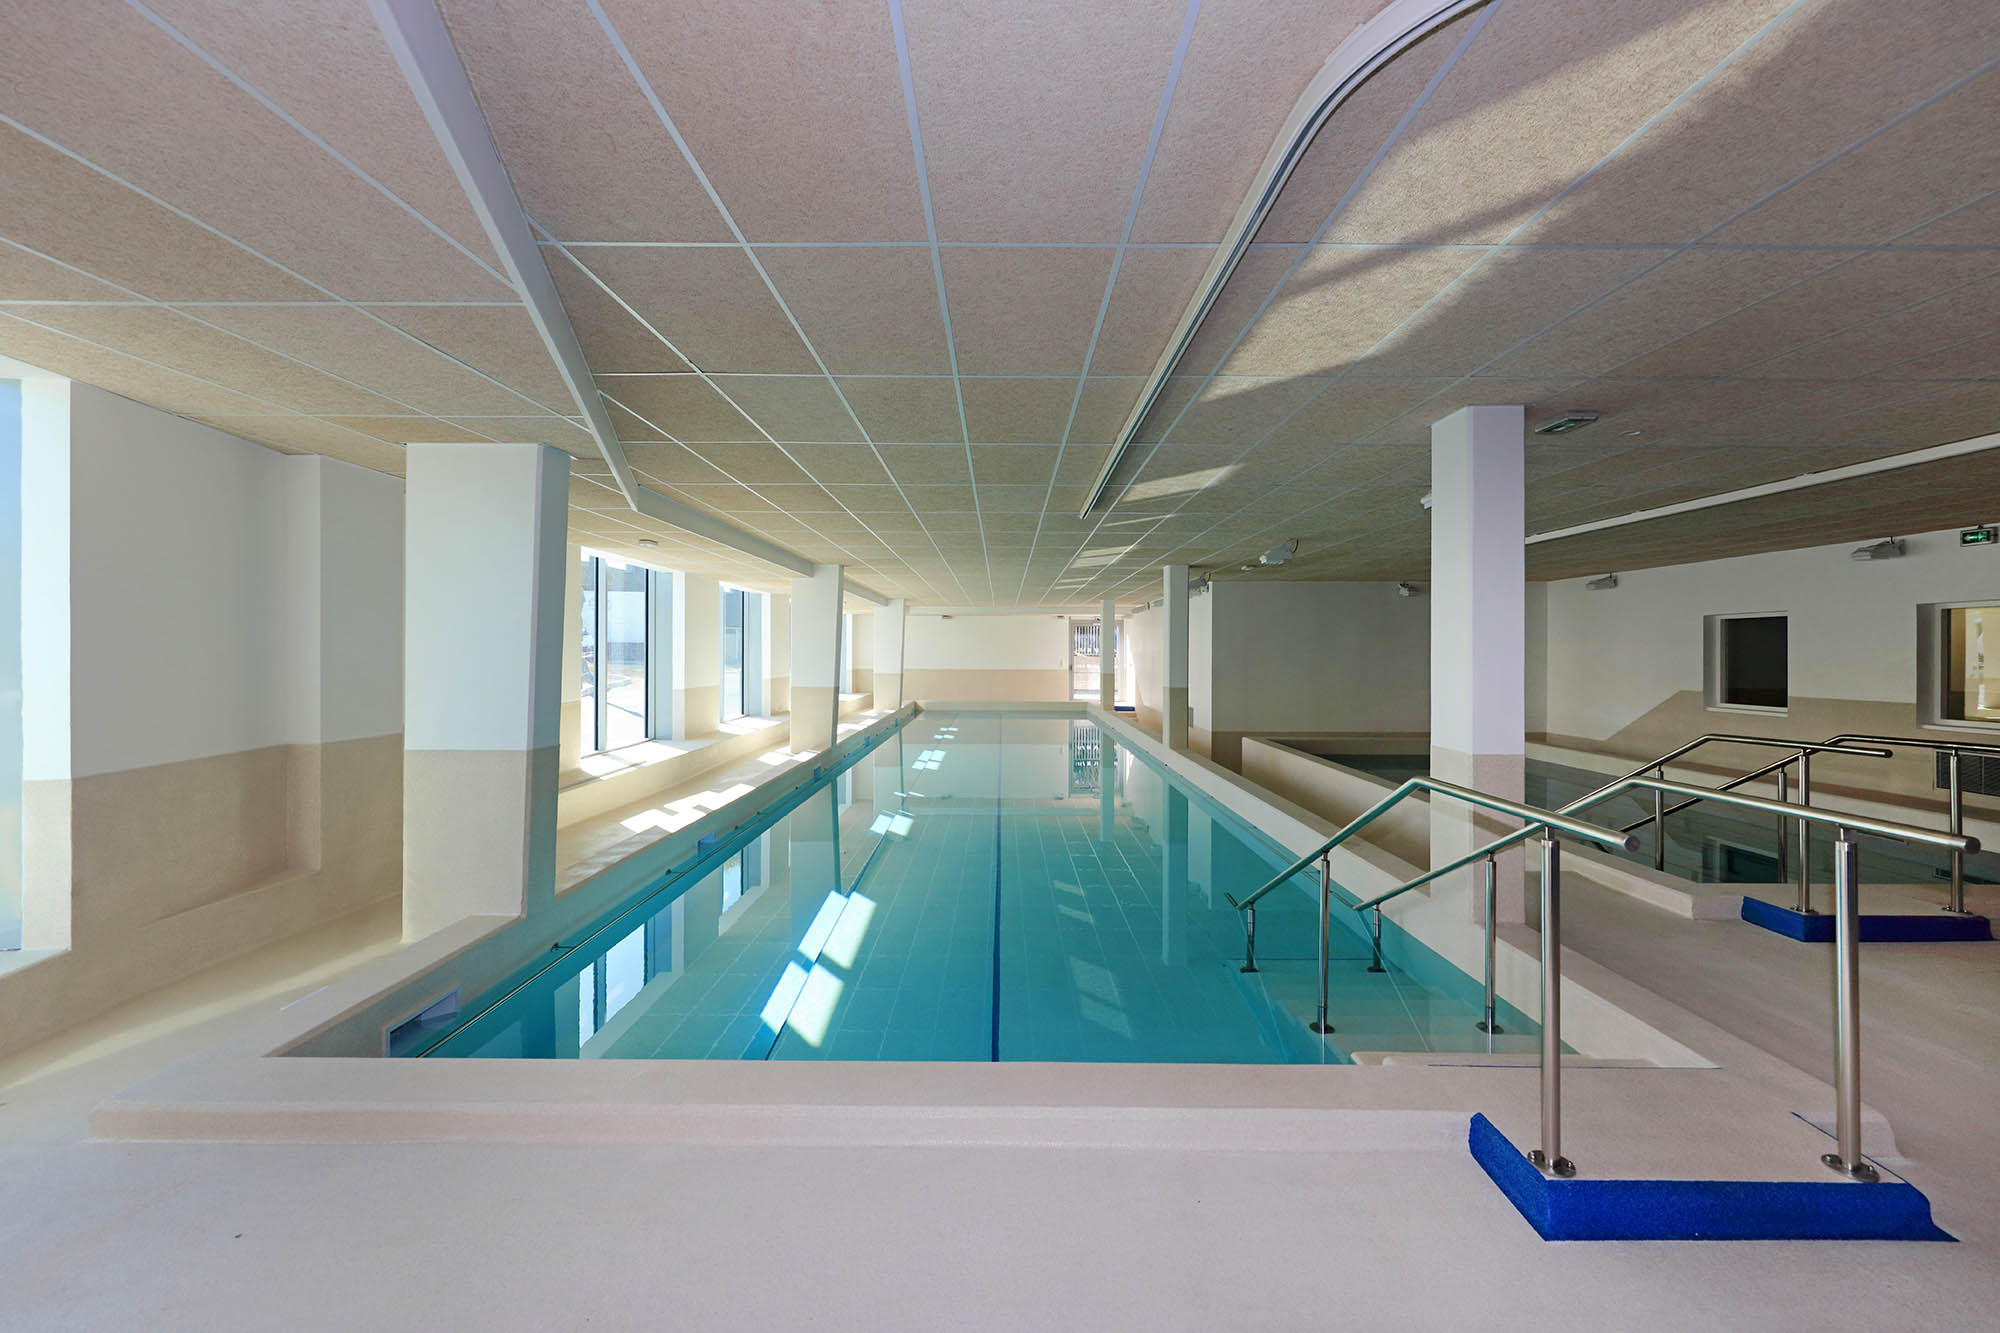 Institut universitaire de r adaptation valmante sud for Piscine universitaire